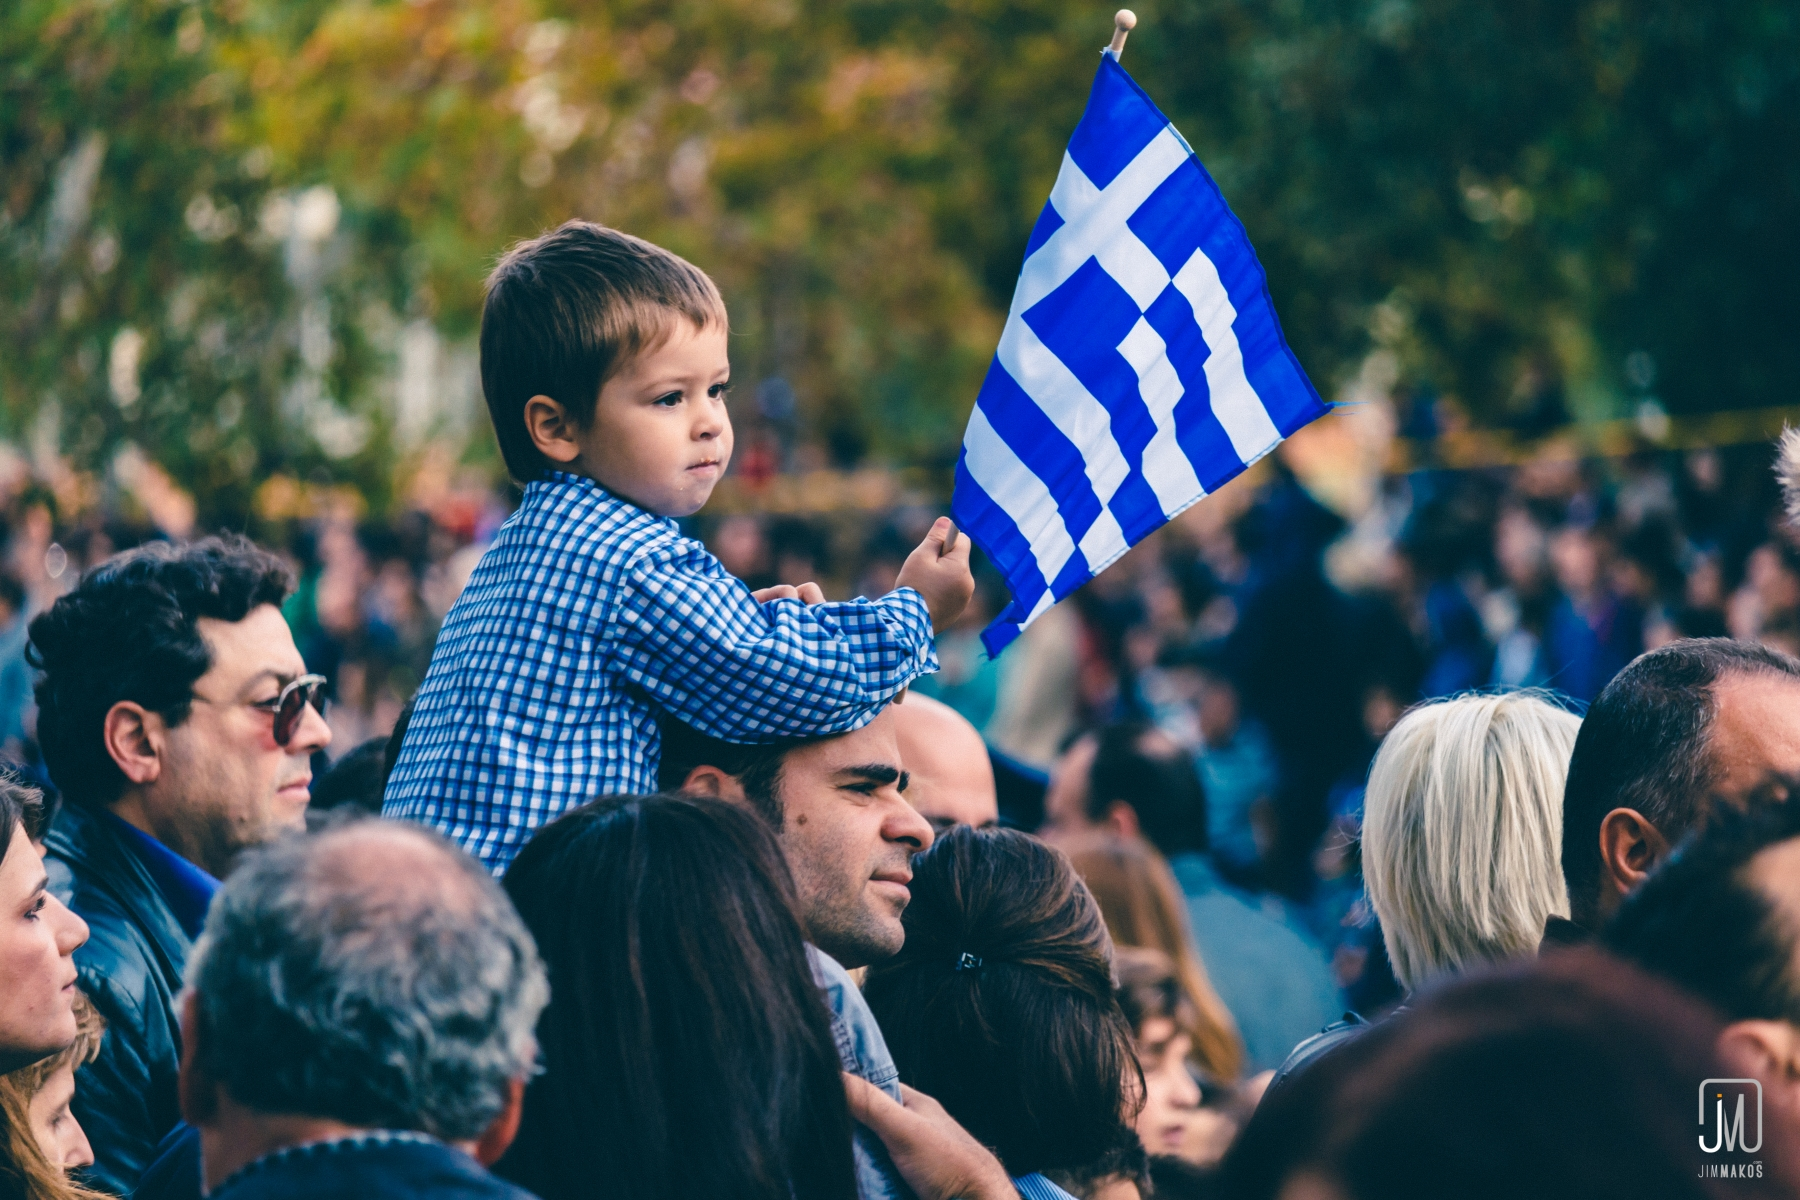 """Celebration of """"NO"""" (""""Oxi"""") in Greece: the history behind it"""